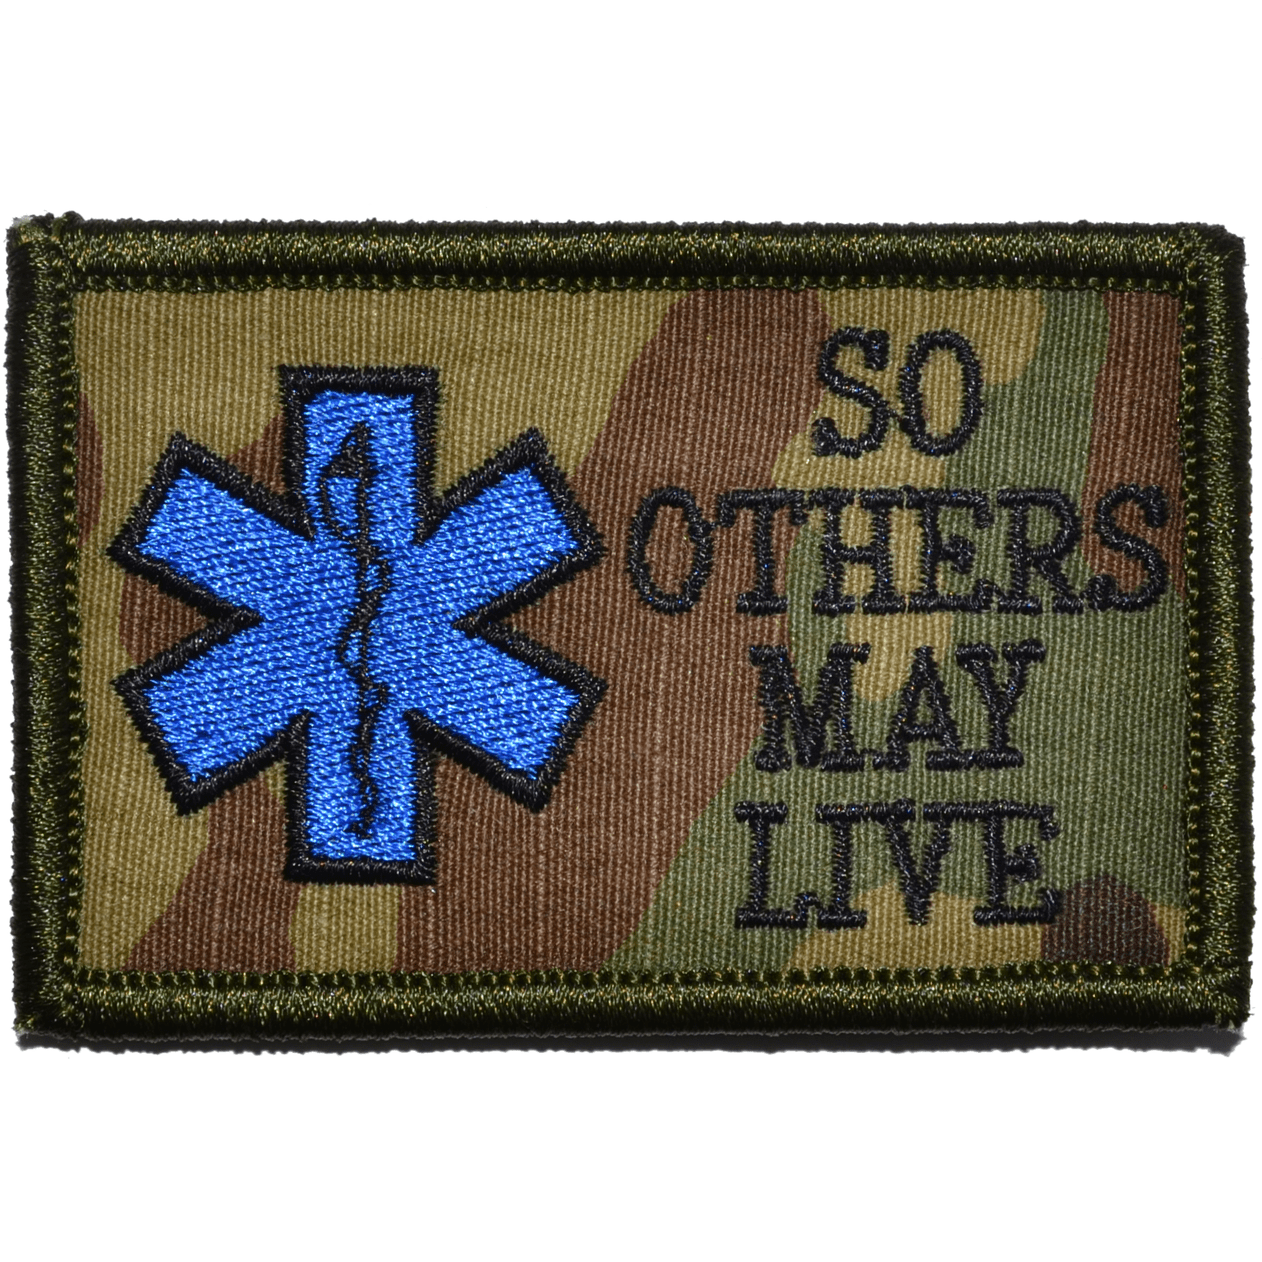 Tactical Gear Junkie Patches MultiCam EMS So Others May Live - 2x3 Patch